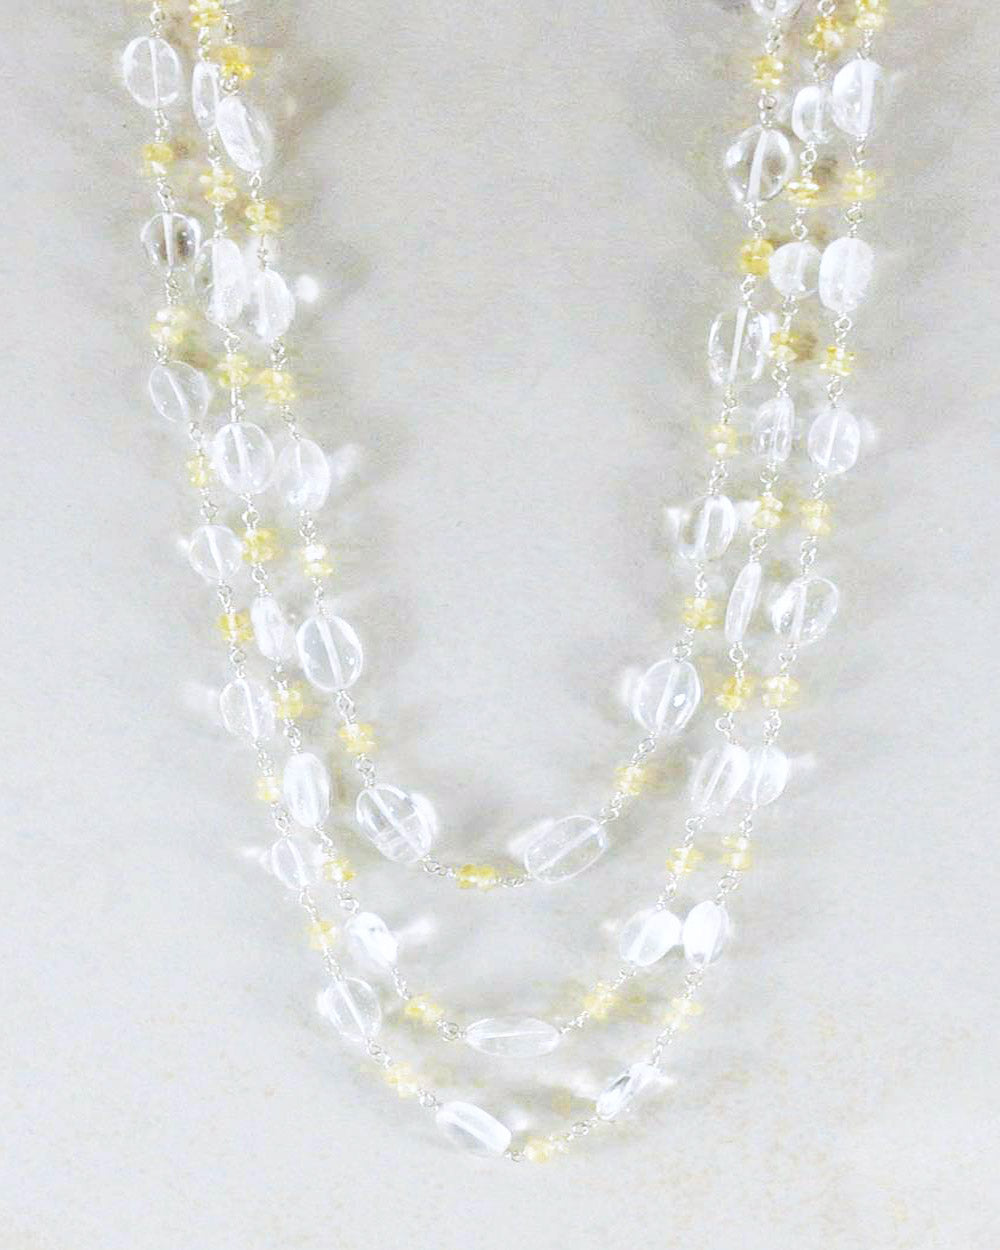 Vital Energy Crystal Necklace